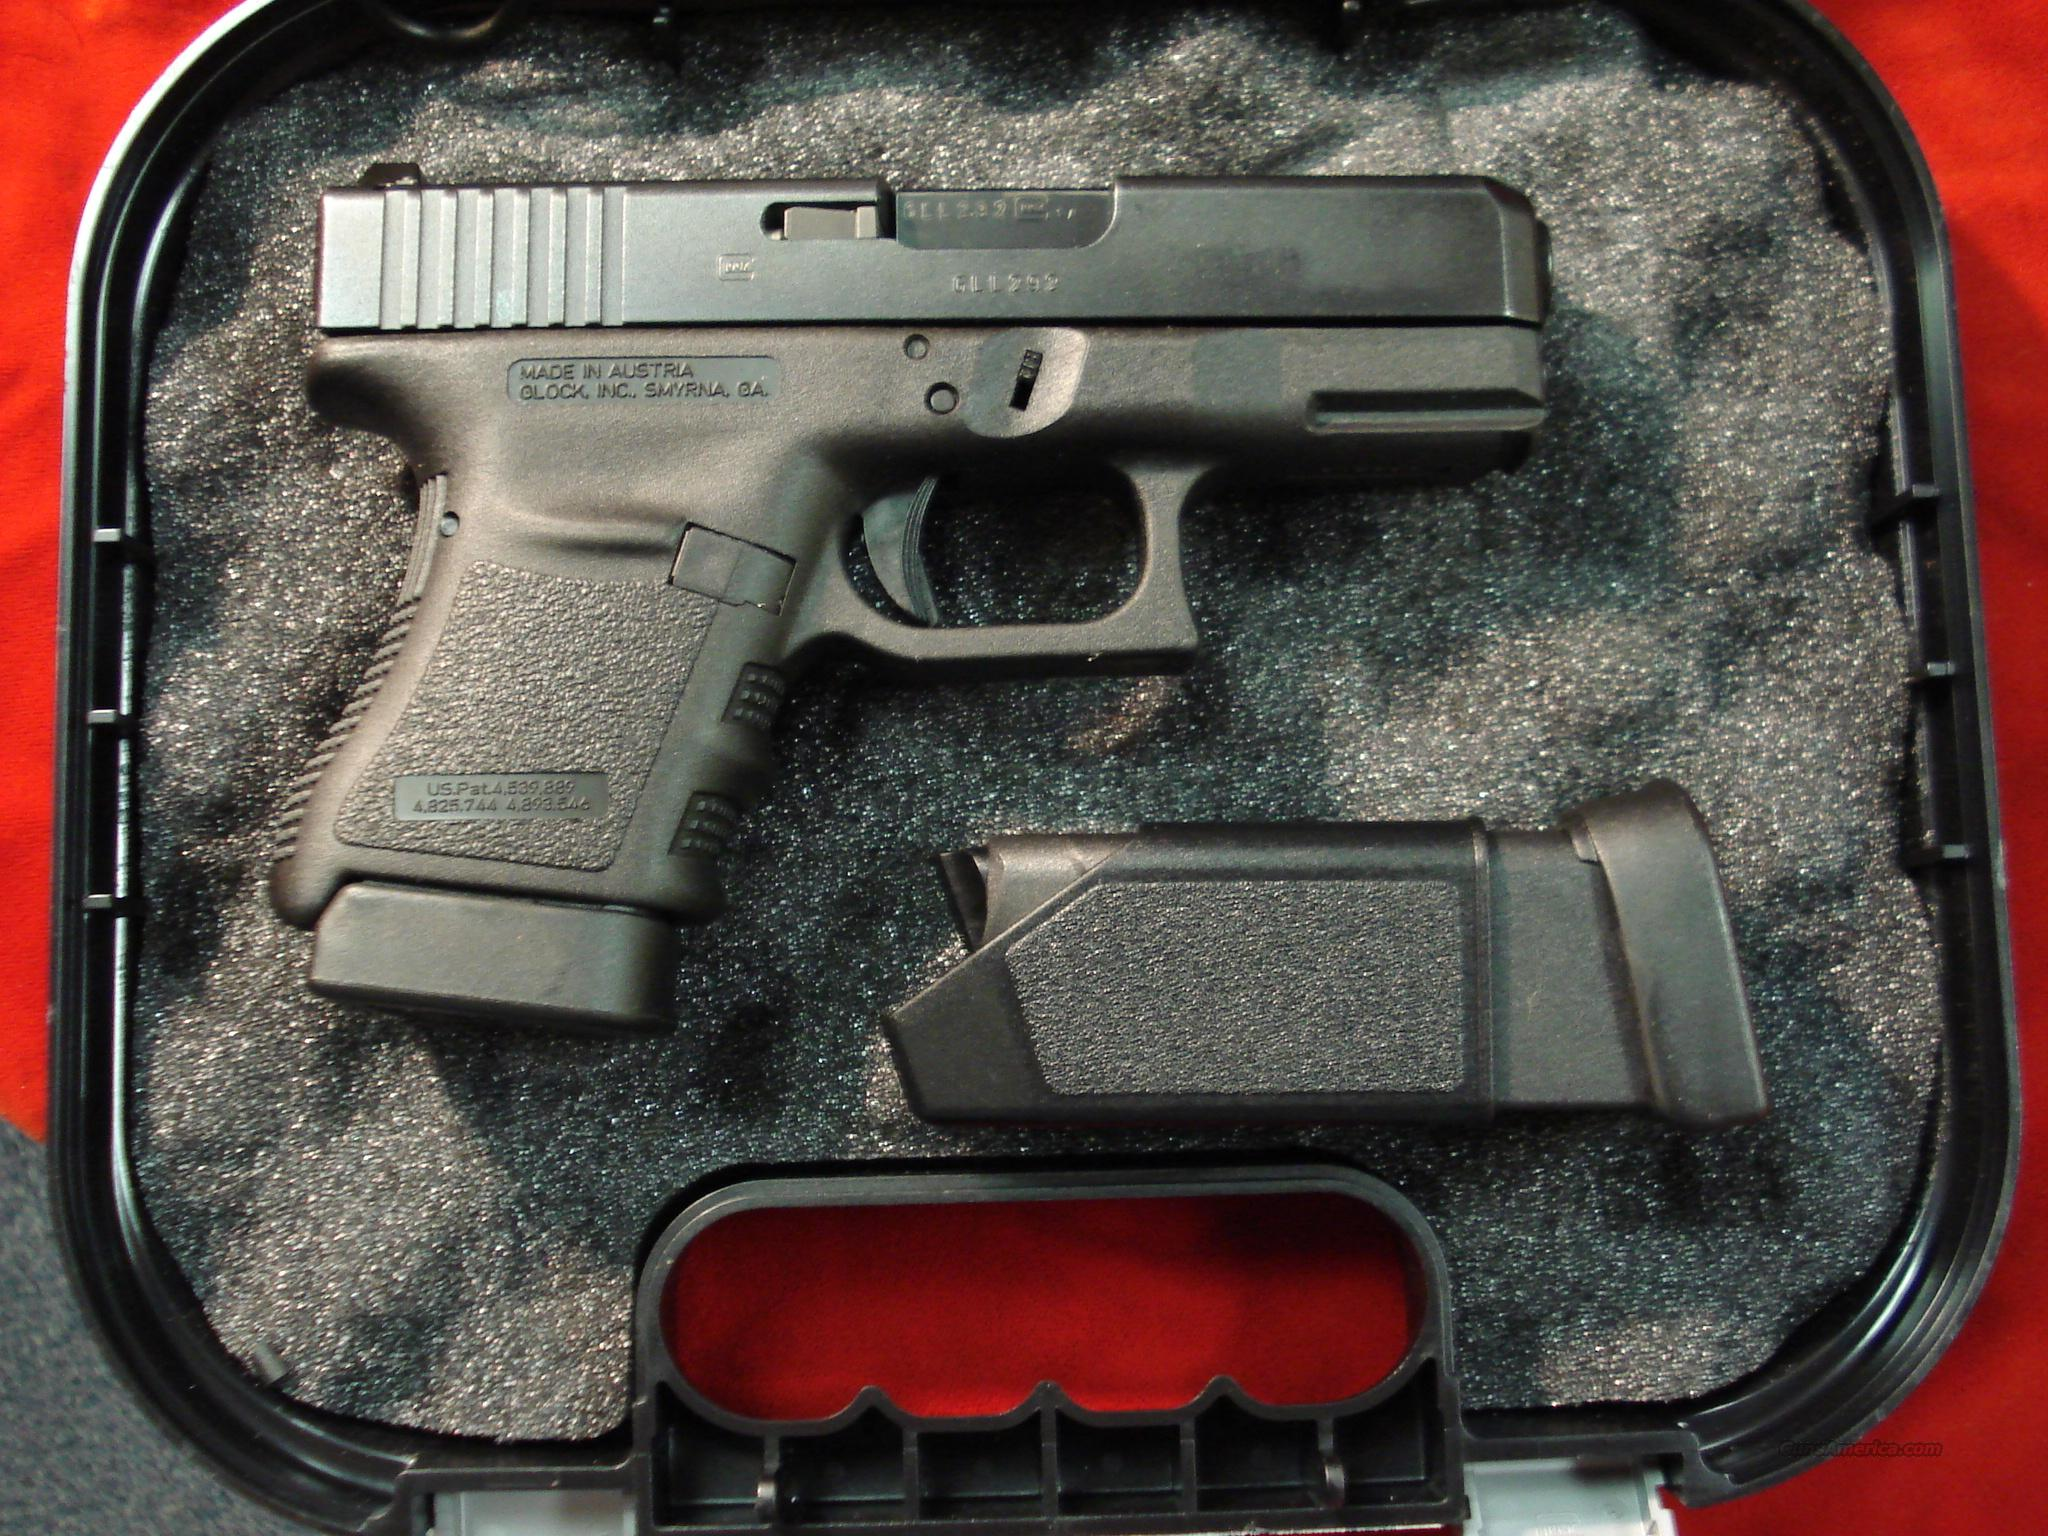 GLOCK 30 LNIB WITH NIGHT SIGHTS  Guns > Pistols > Glock Pistols